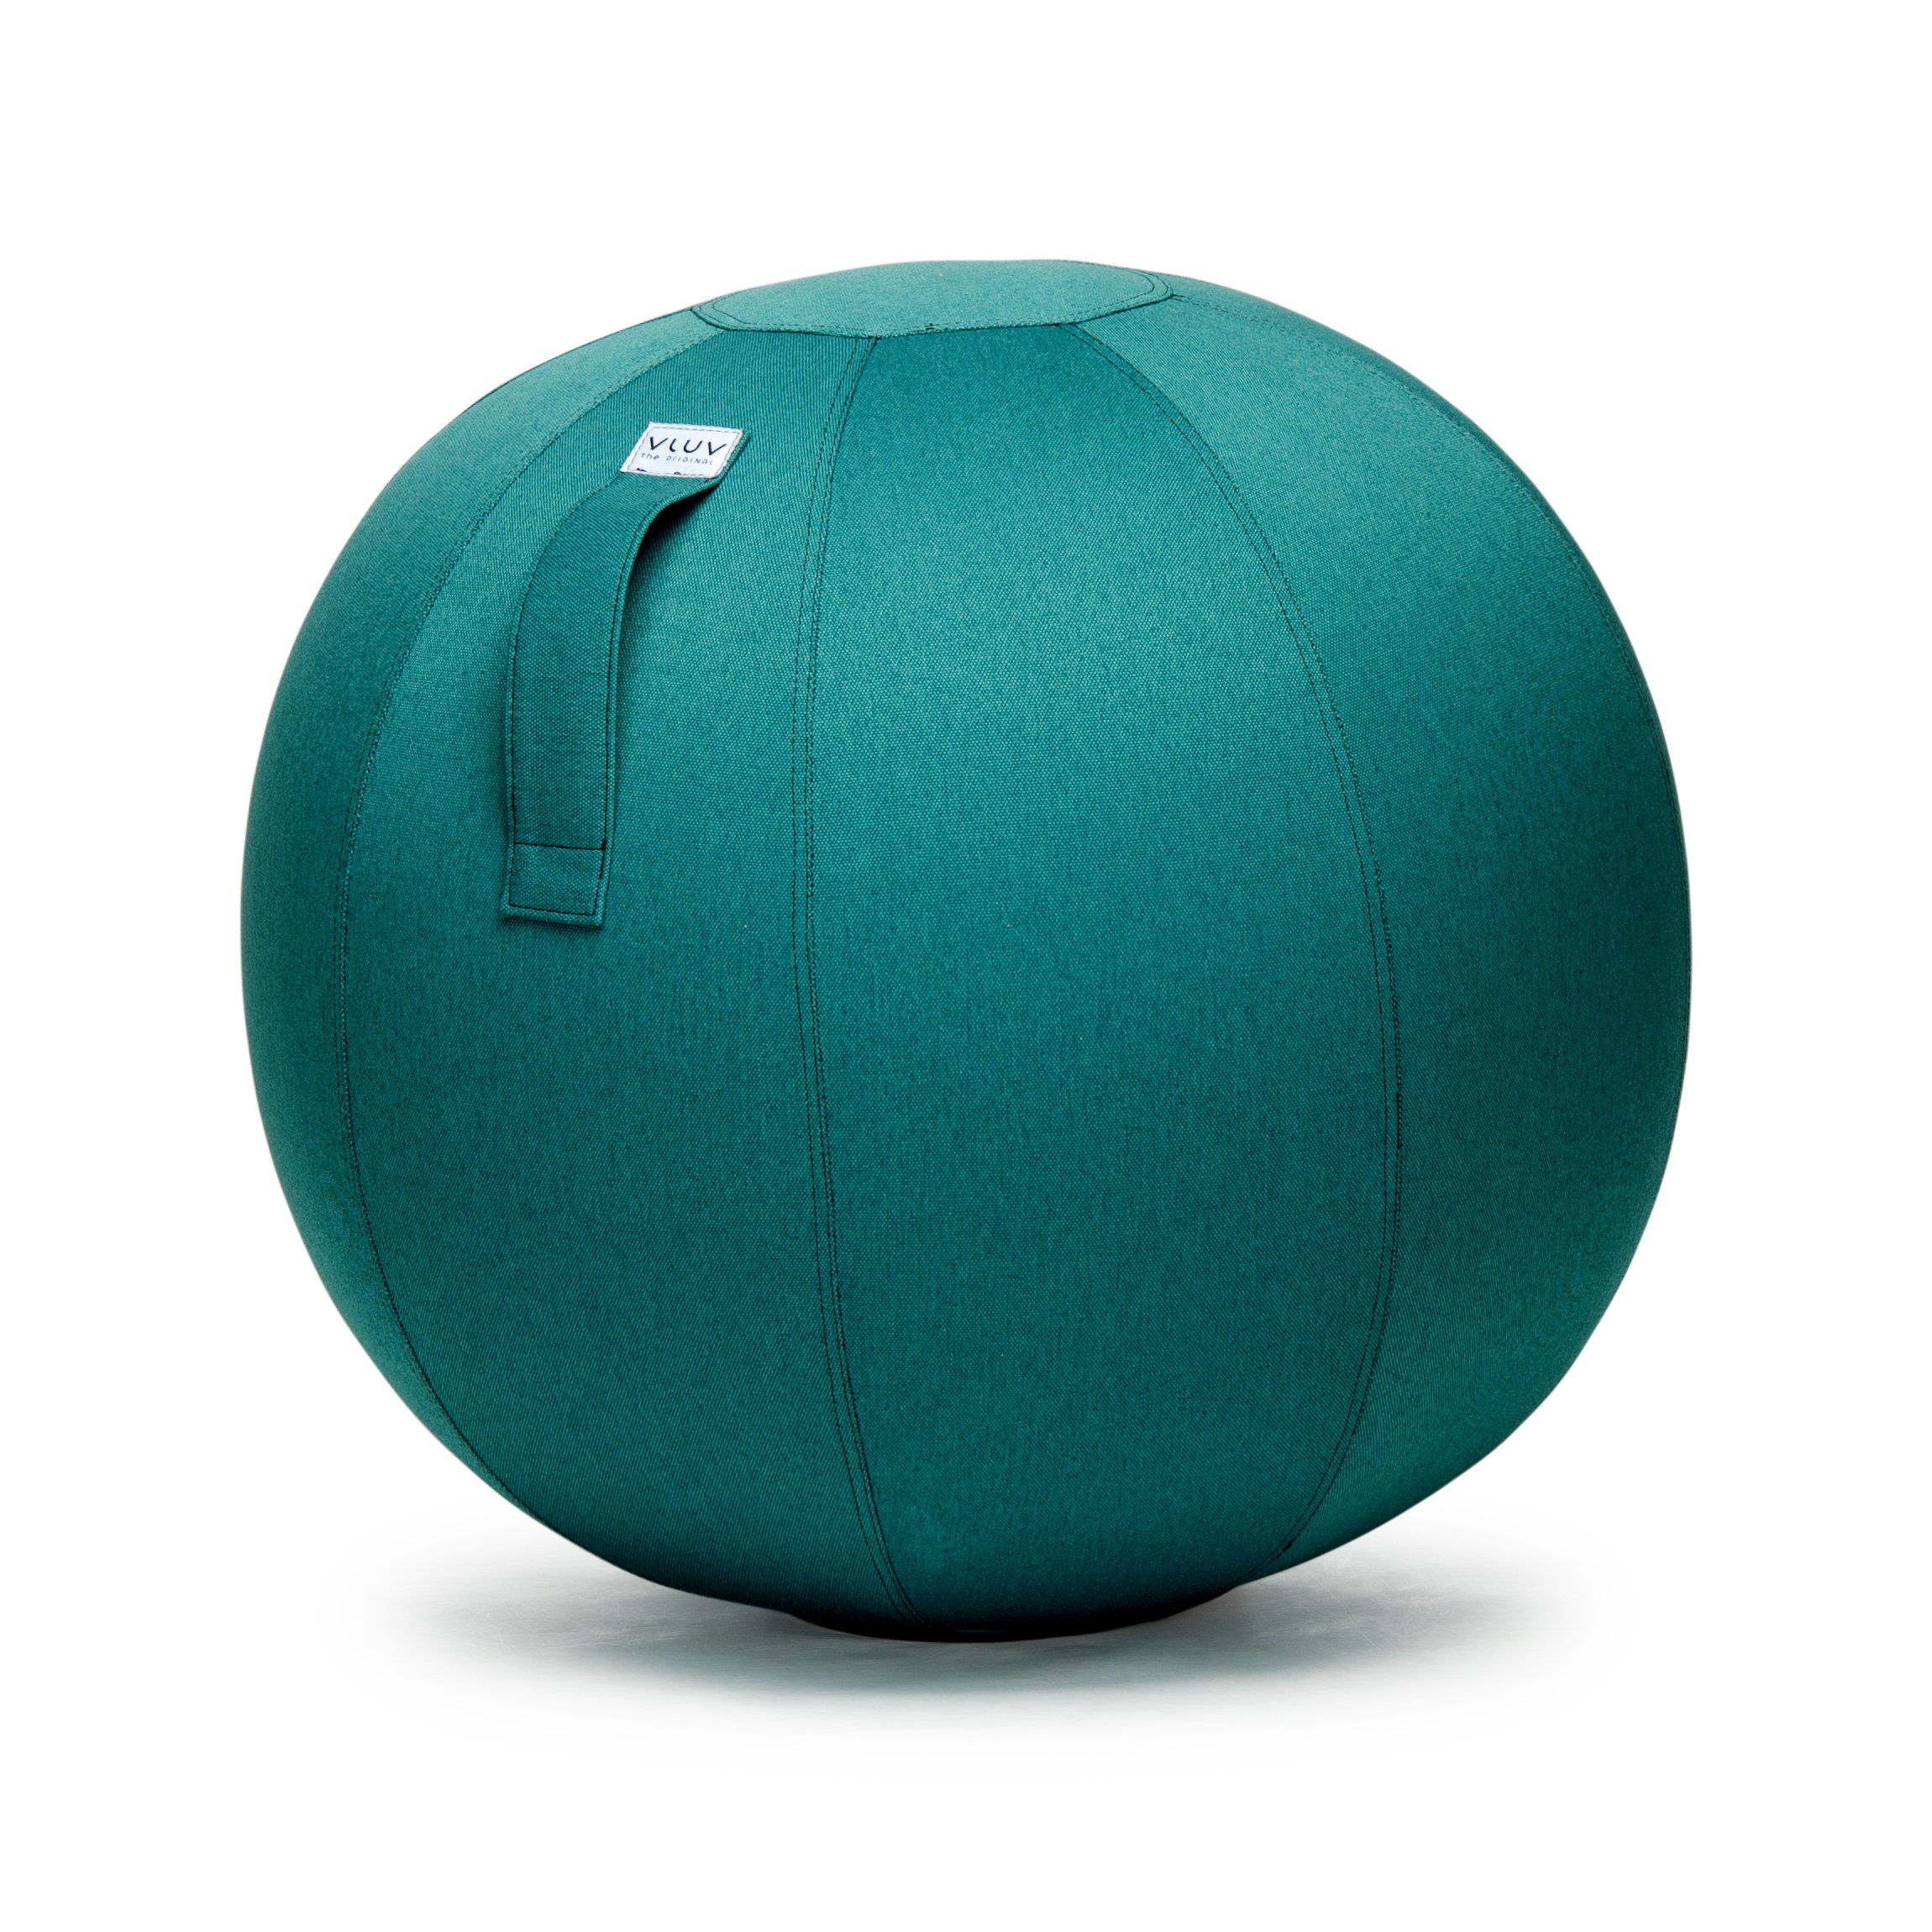 VLUV LEIV 29.5'' Premium Quality Self-Standing Sitting Ball with Handle - Home or Office Chair and Exercise Ball for Yoga, Stretching, or Gym Stone Colored Canvas Fabric (Petrol Colored, 25.6'')